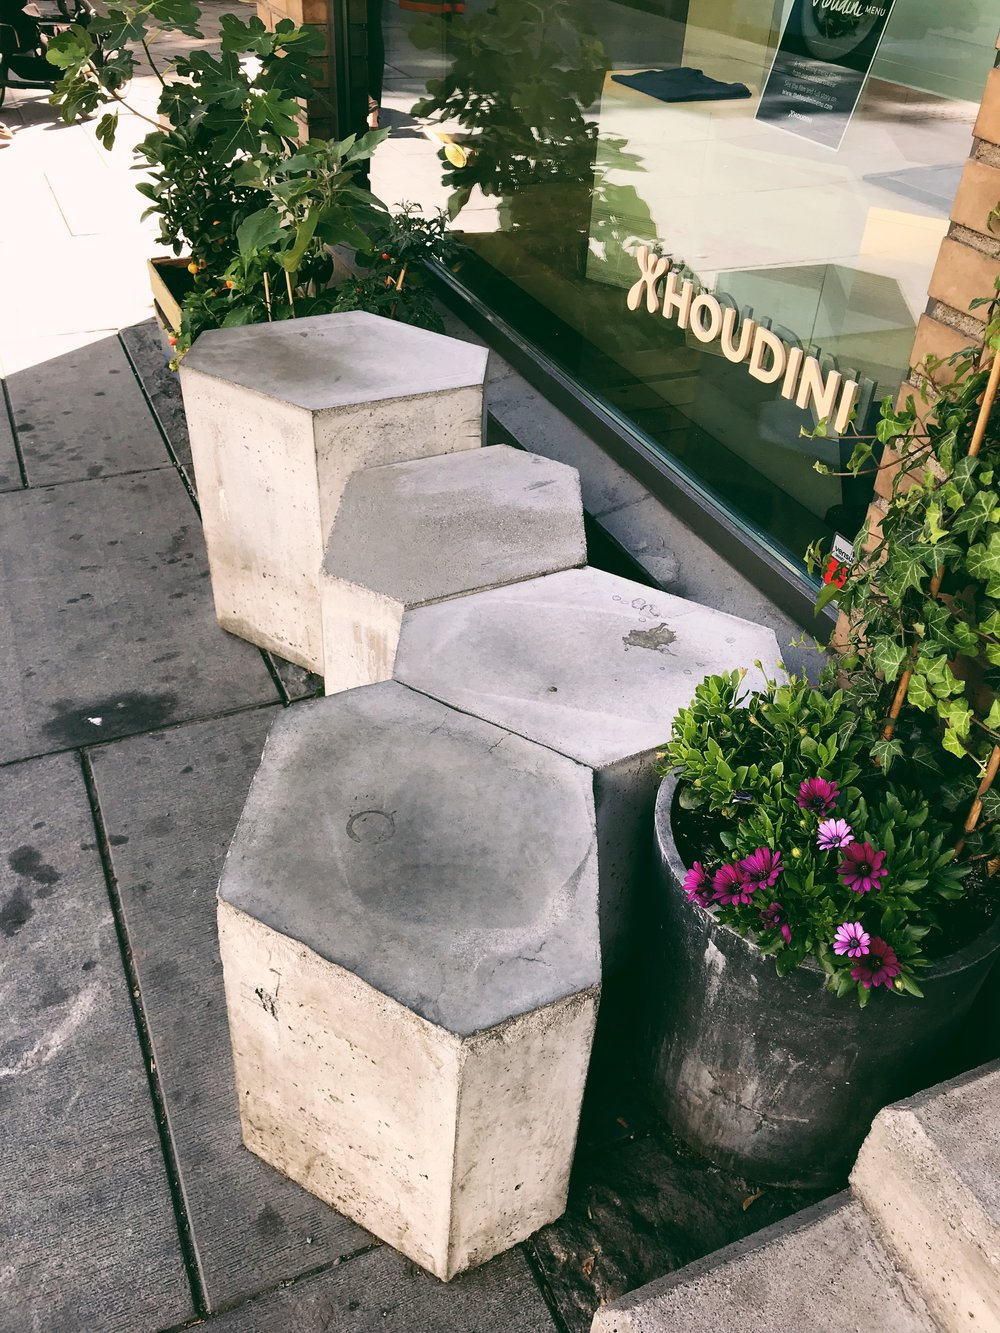 CONCRETE SCULPTURES AND OUTDOOR LOUNGE | HOUDINI HUB OSLO